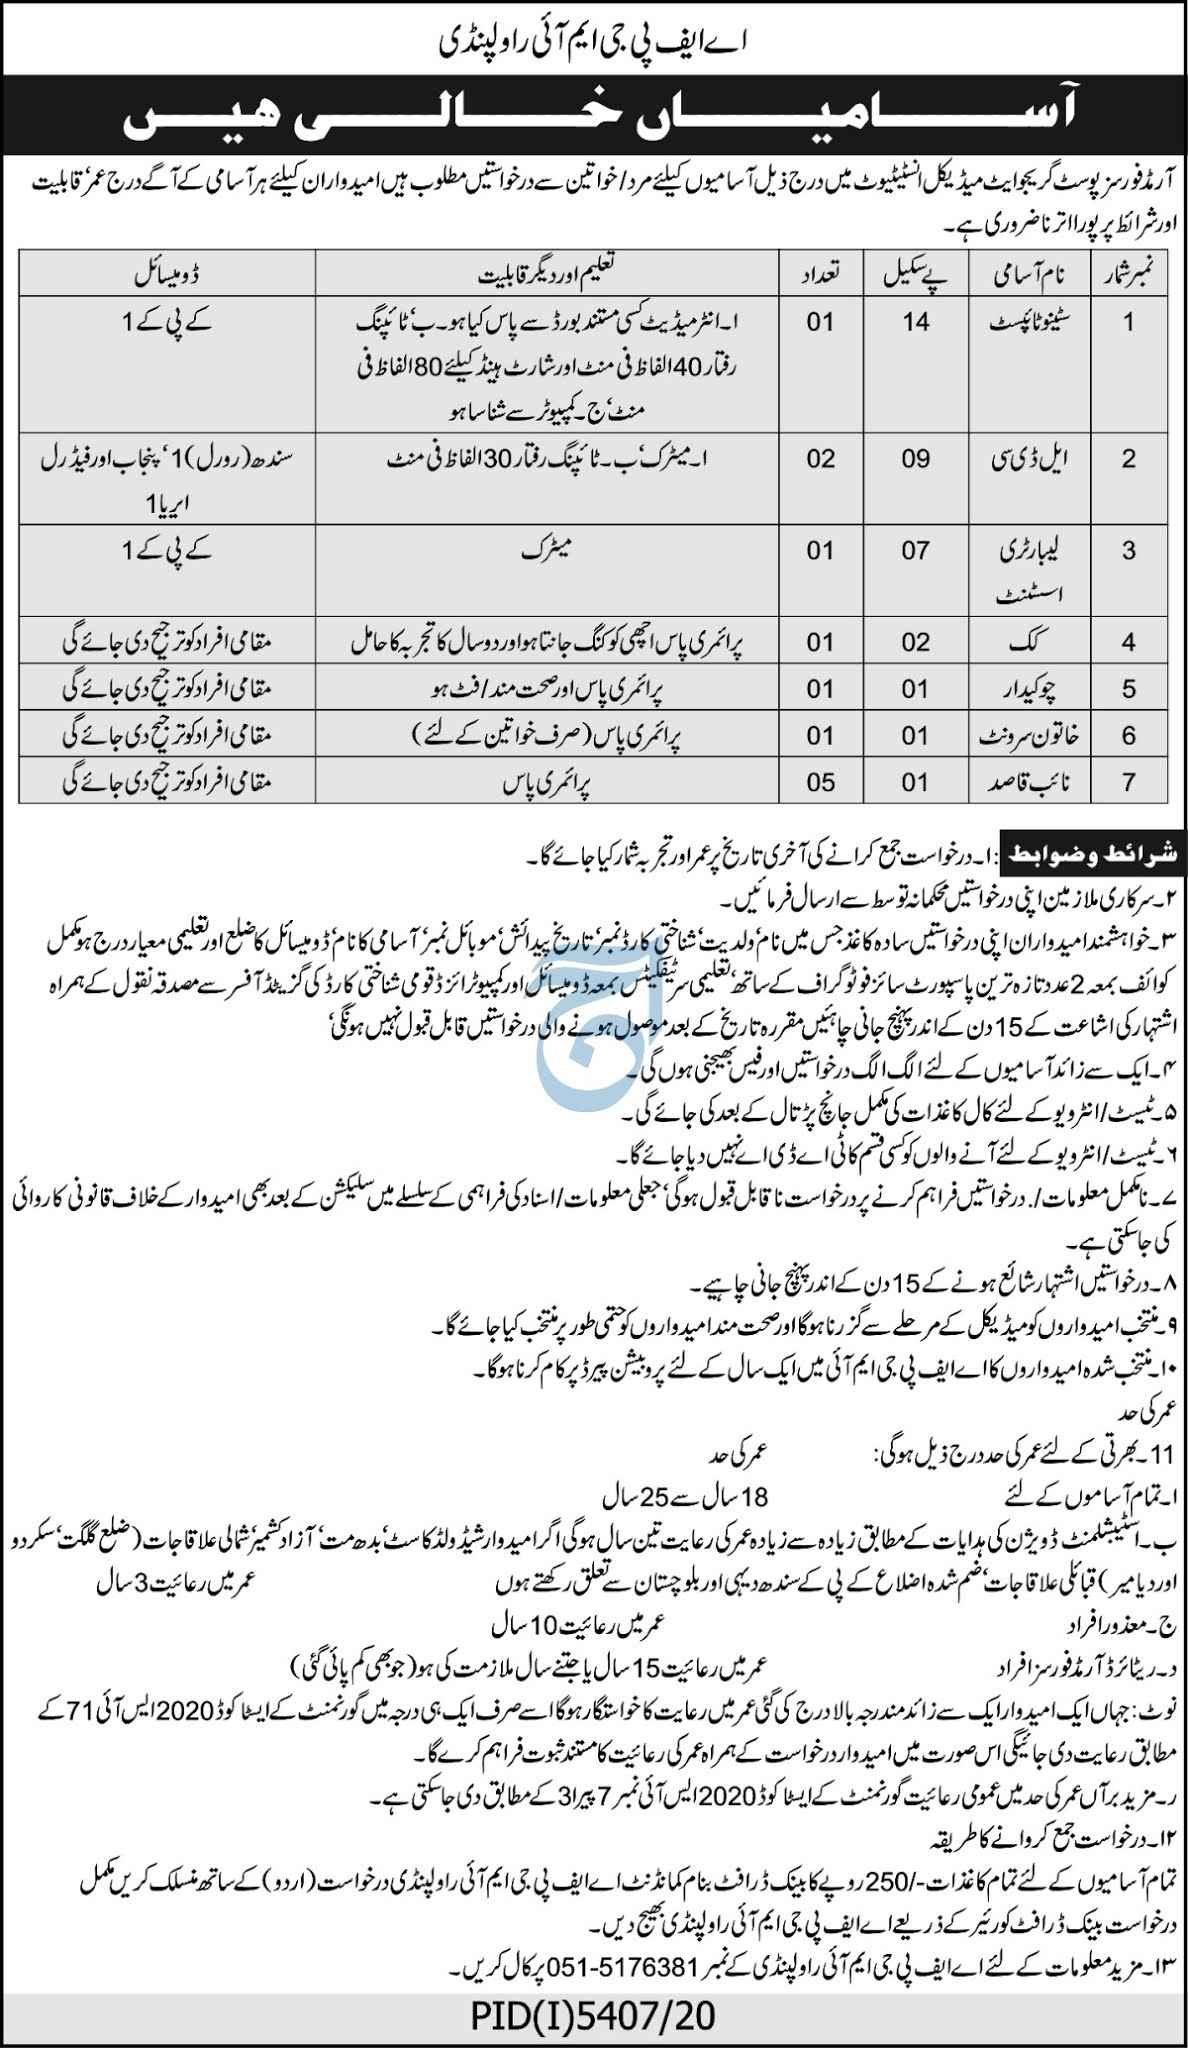 Latest Armed Forces Post Graduate Medical Institute AFPGMI Army jobs 2021 For LDC, Laboratory Assistant & more